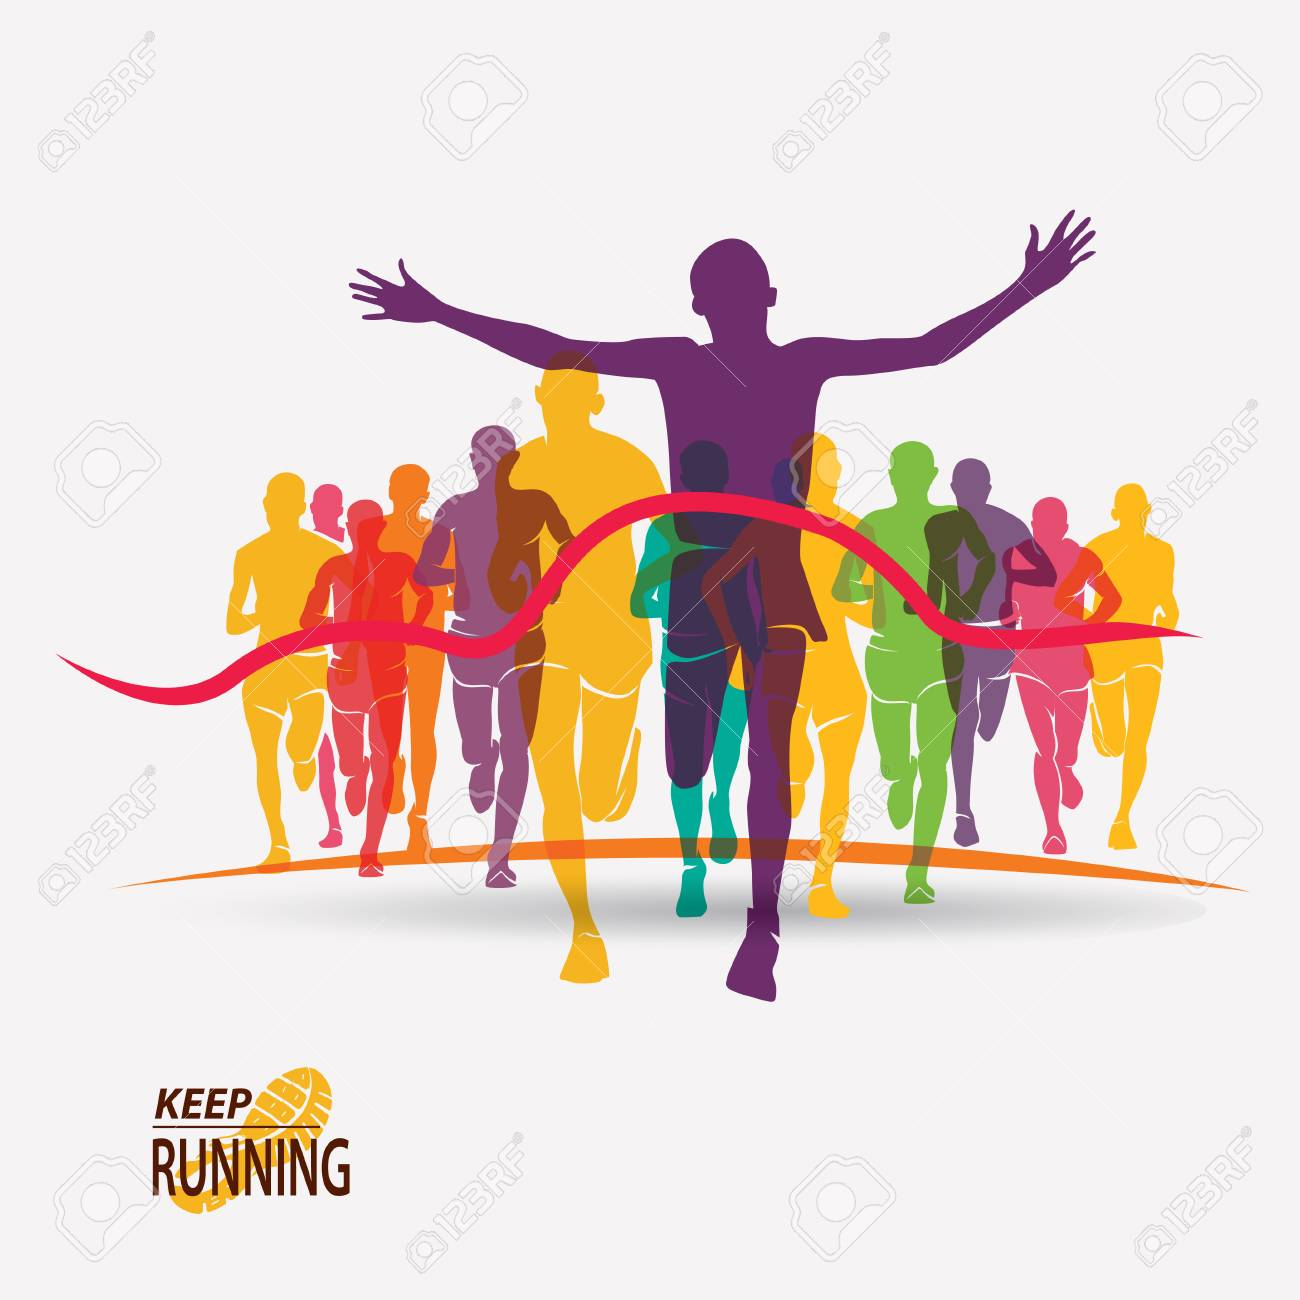 running people set of silhouettes, competition and finish - 70453975